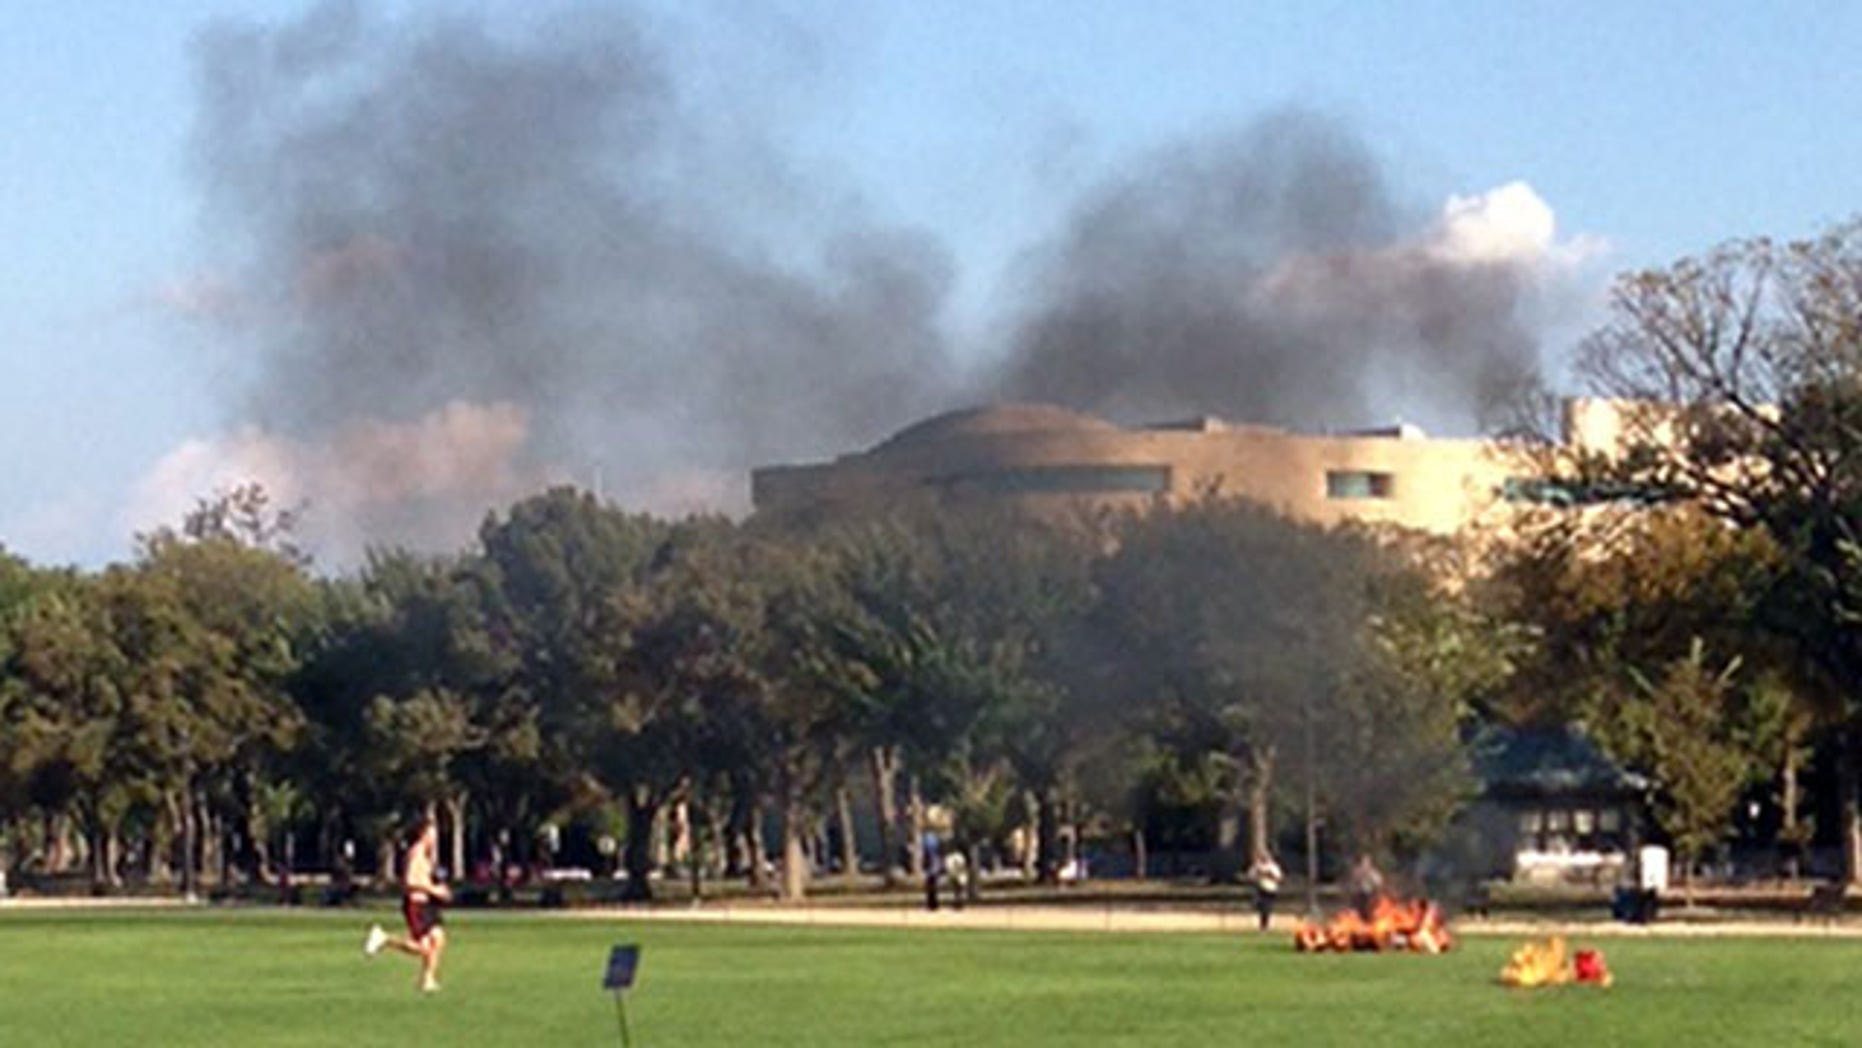 October 4, 2013: In this photo provided by Katy Scheflen, people run to a man who set himself on fire on the National Mall in Washington. (AP Photo)